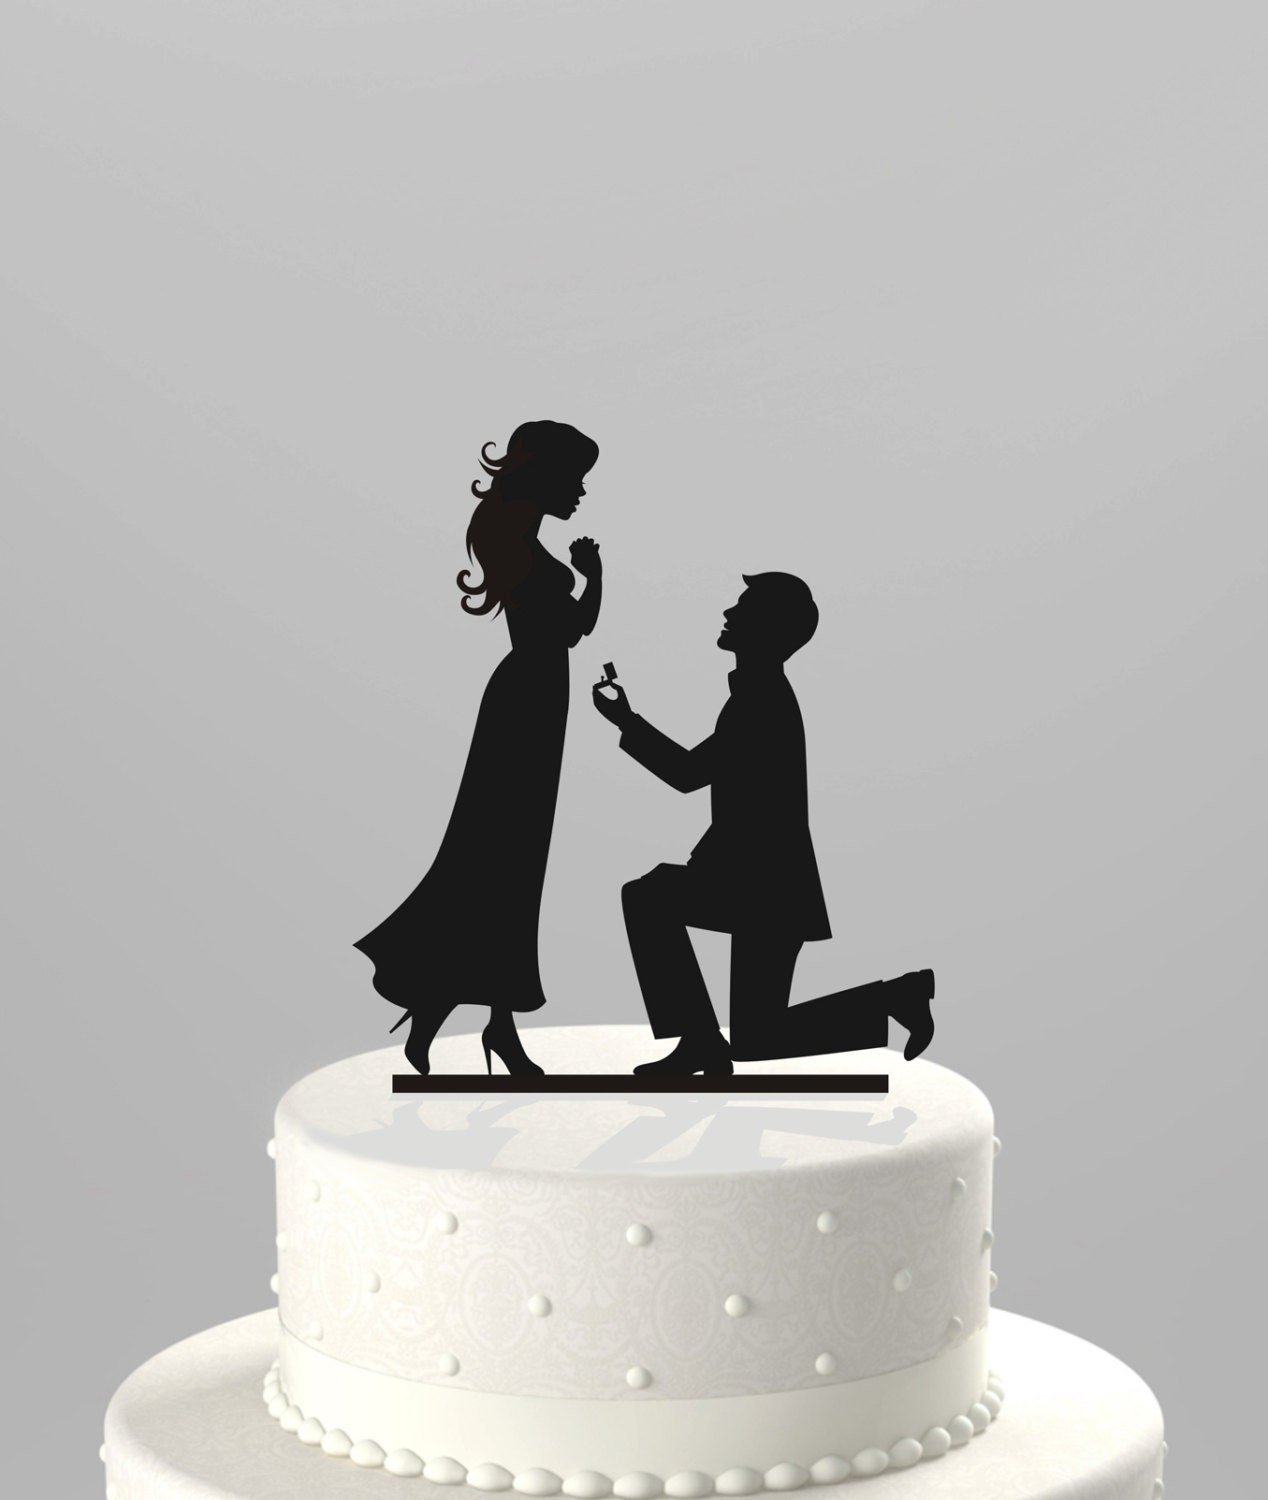 Silhouette Cutters For Cakes Wedding Cake Topper Silhouette